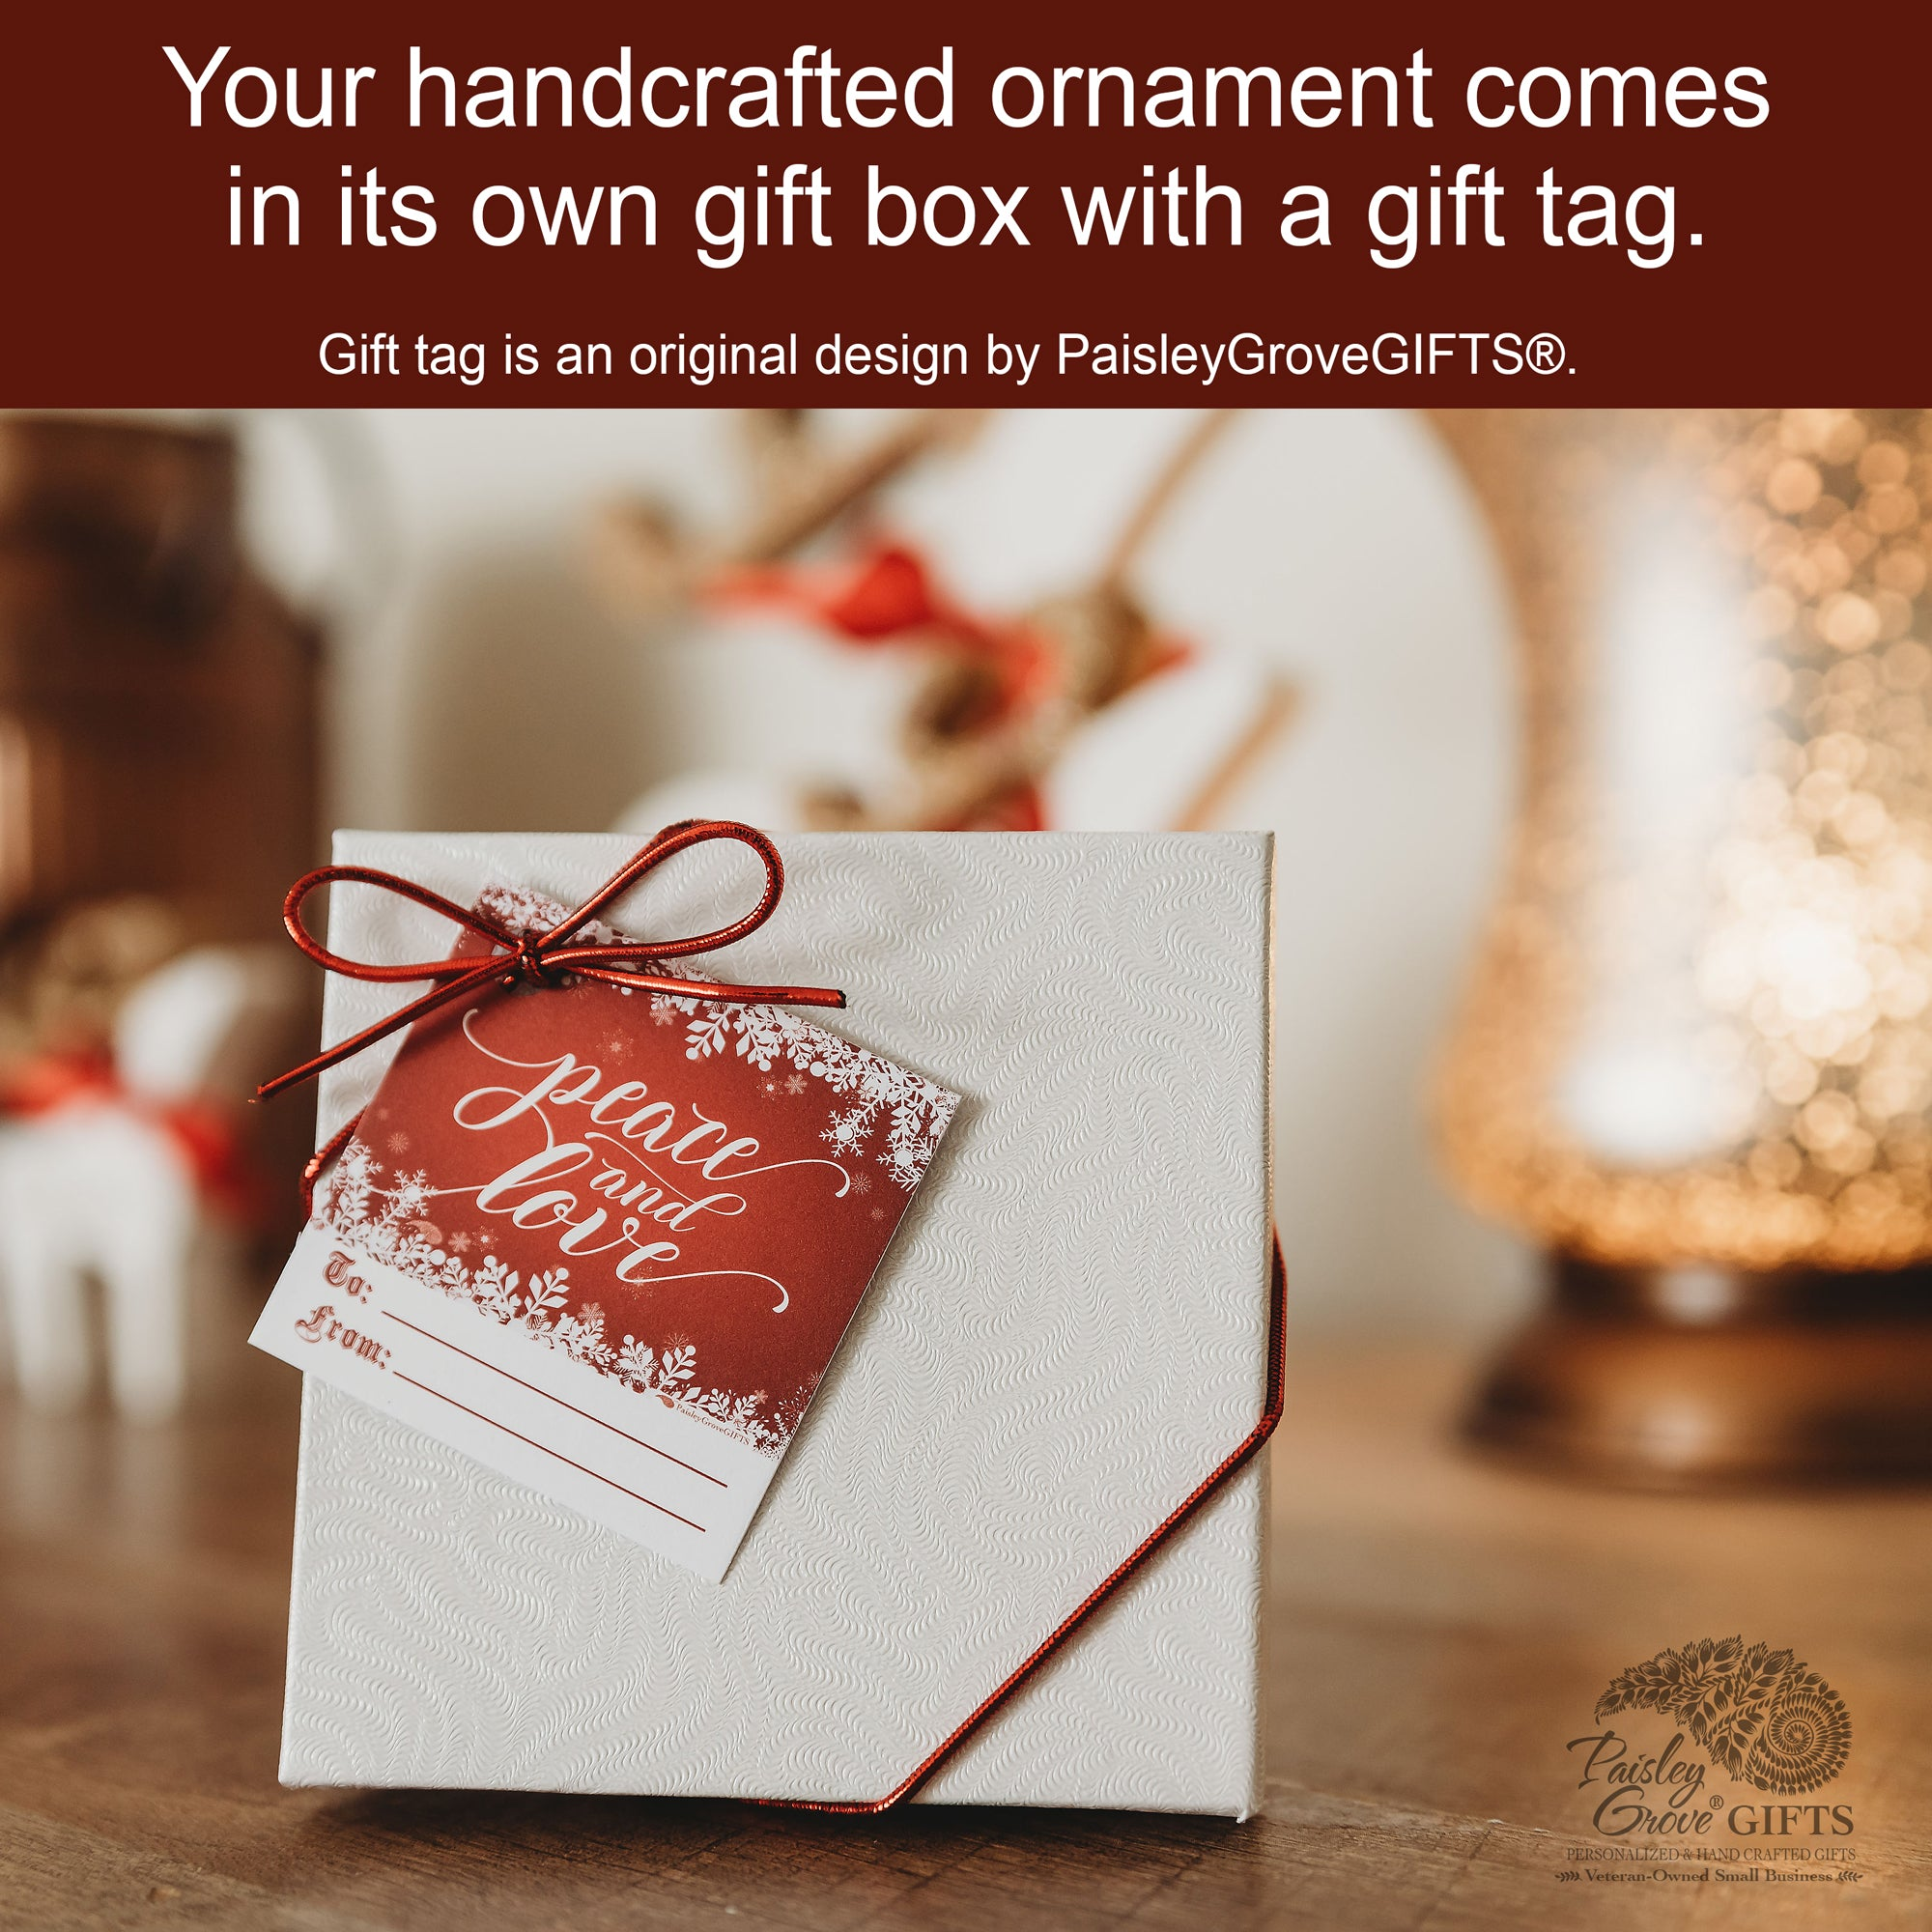 CopyrightPaisleyGroveGIFTS S502e5 Personalized Grandma and Grandpa Ornament from grandchildren with gift box and gift tag